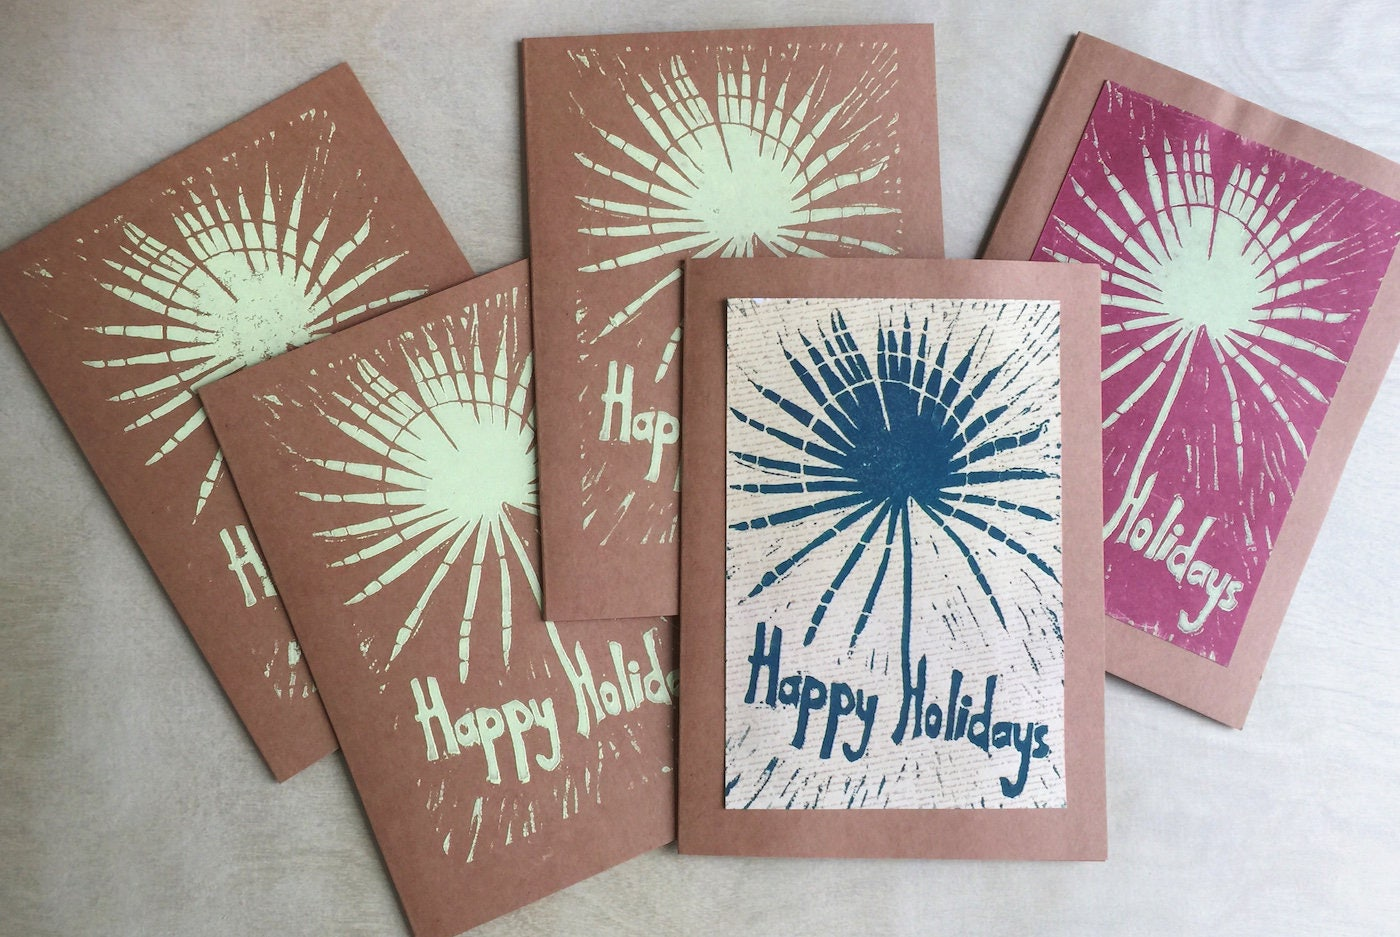 holiday card sale five christmas cards handmade holiday cards tropical holiday cards - Christmas Card Sale